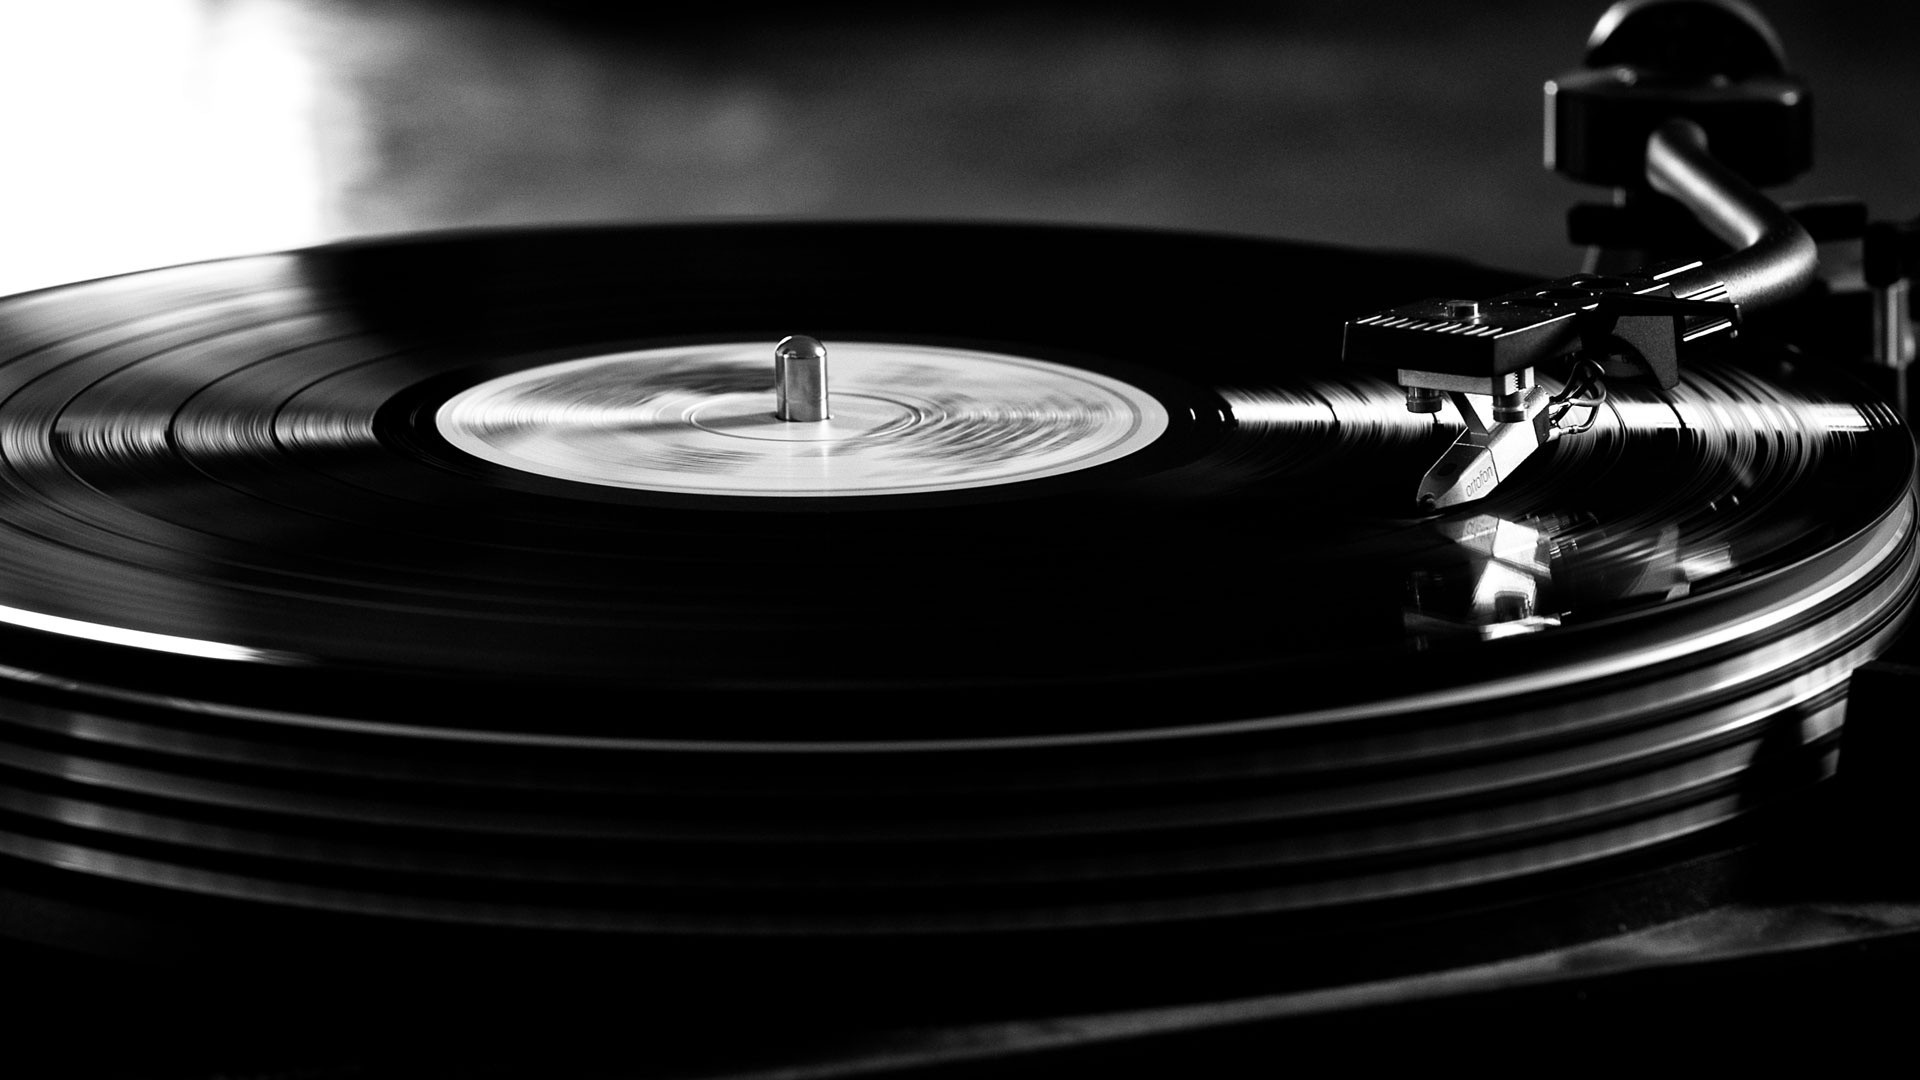 'High Definition Vinyl' is happening, potentially in 2019